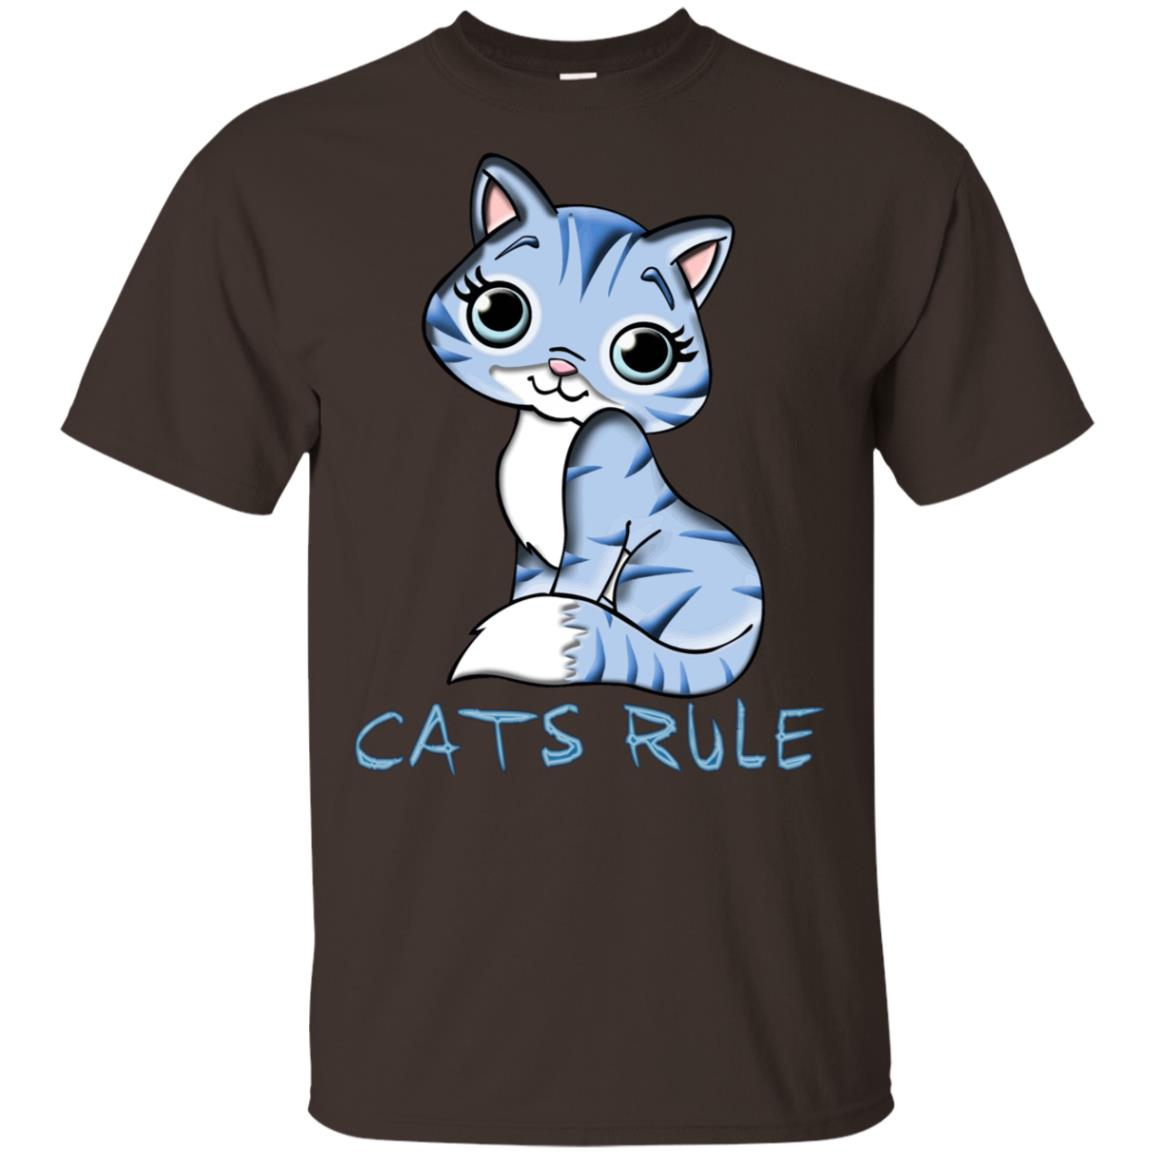 Cute Cats Rule Sweats s gifts Unisex Short Sleeve